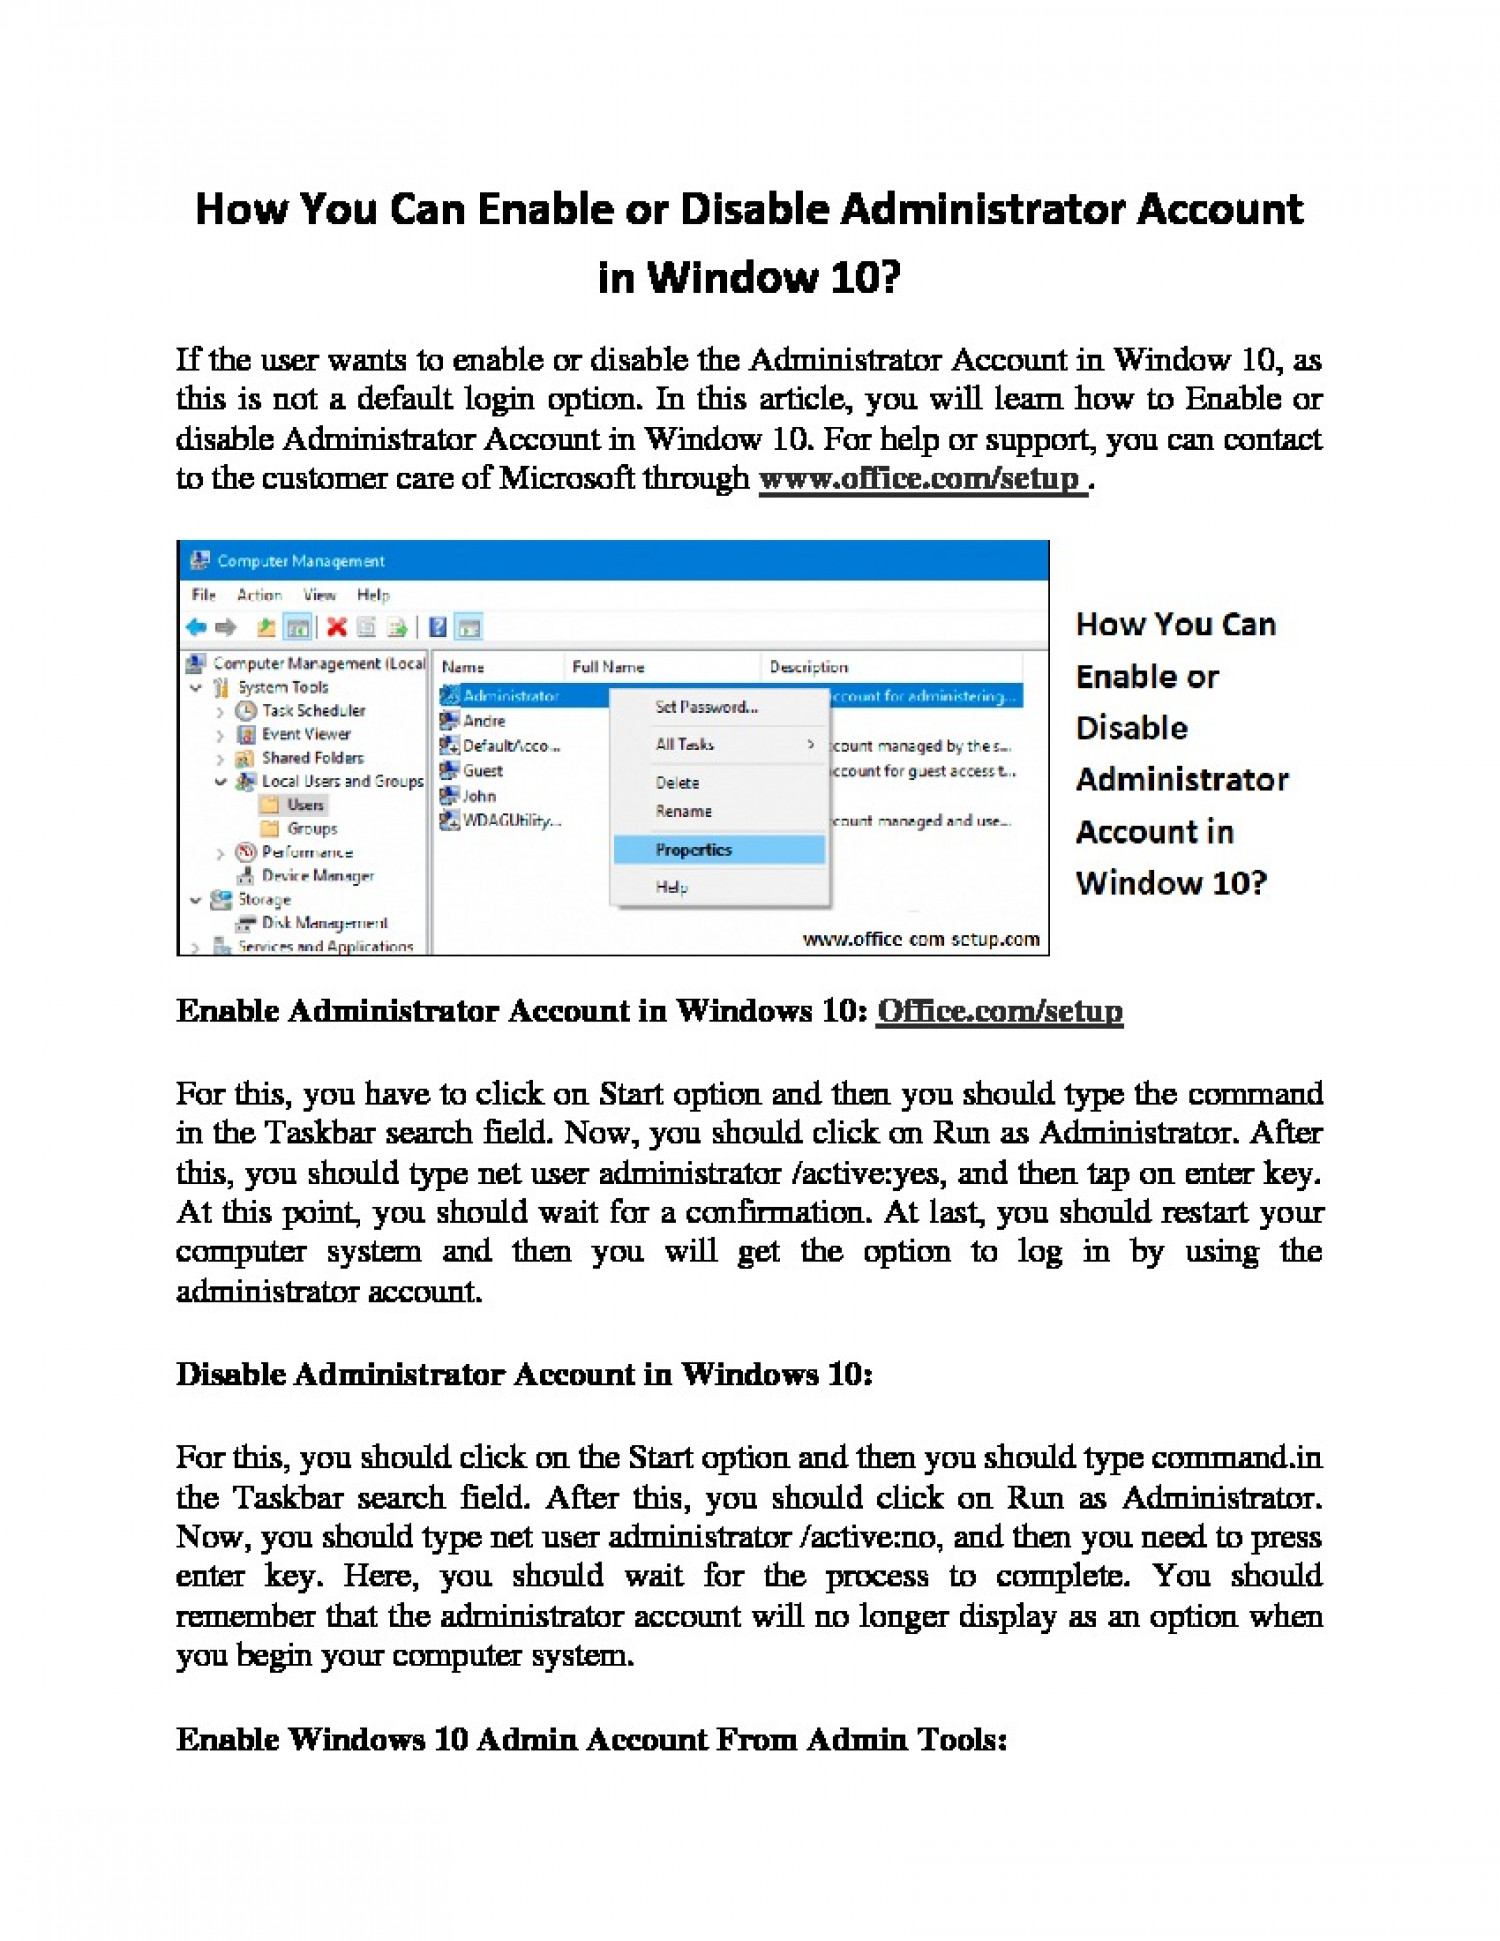 How You Can Enable or Disable Administrator Account in Window 10? Infographic